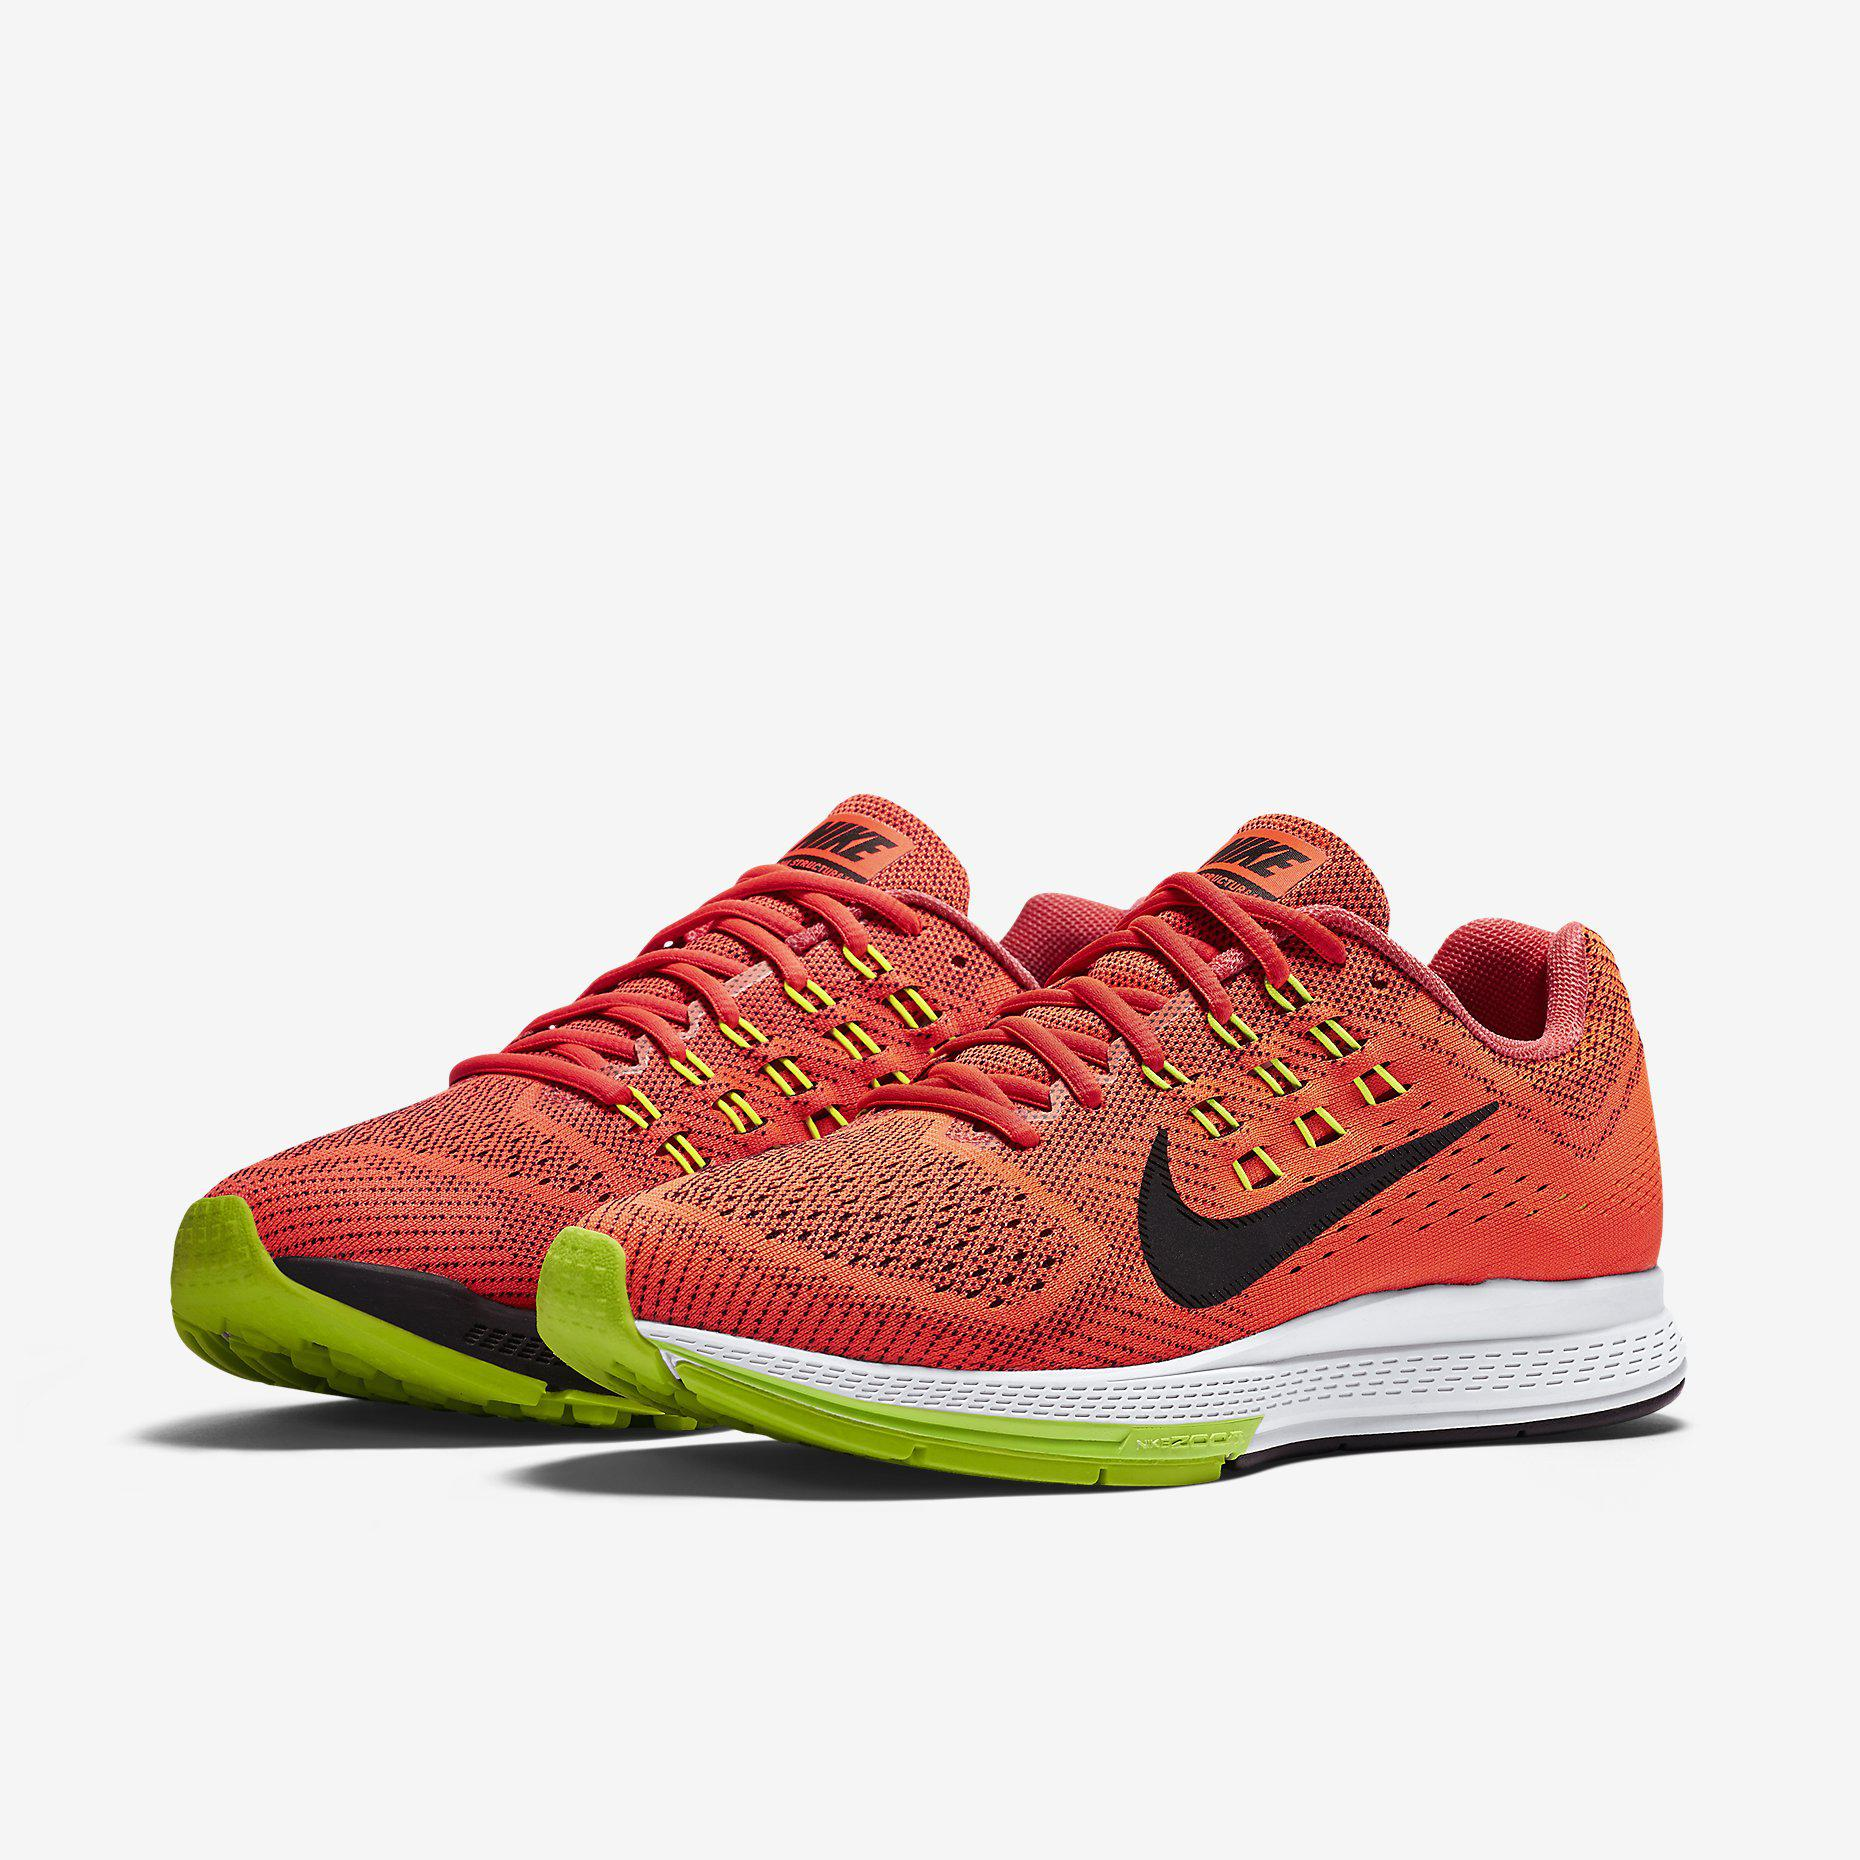 huge selection of 85298 c34f5 Nike Mens Air Zoom Structure 18 Running Shoes - Bright Crimson Black